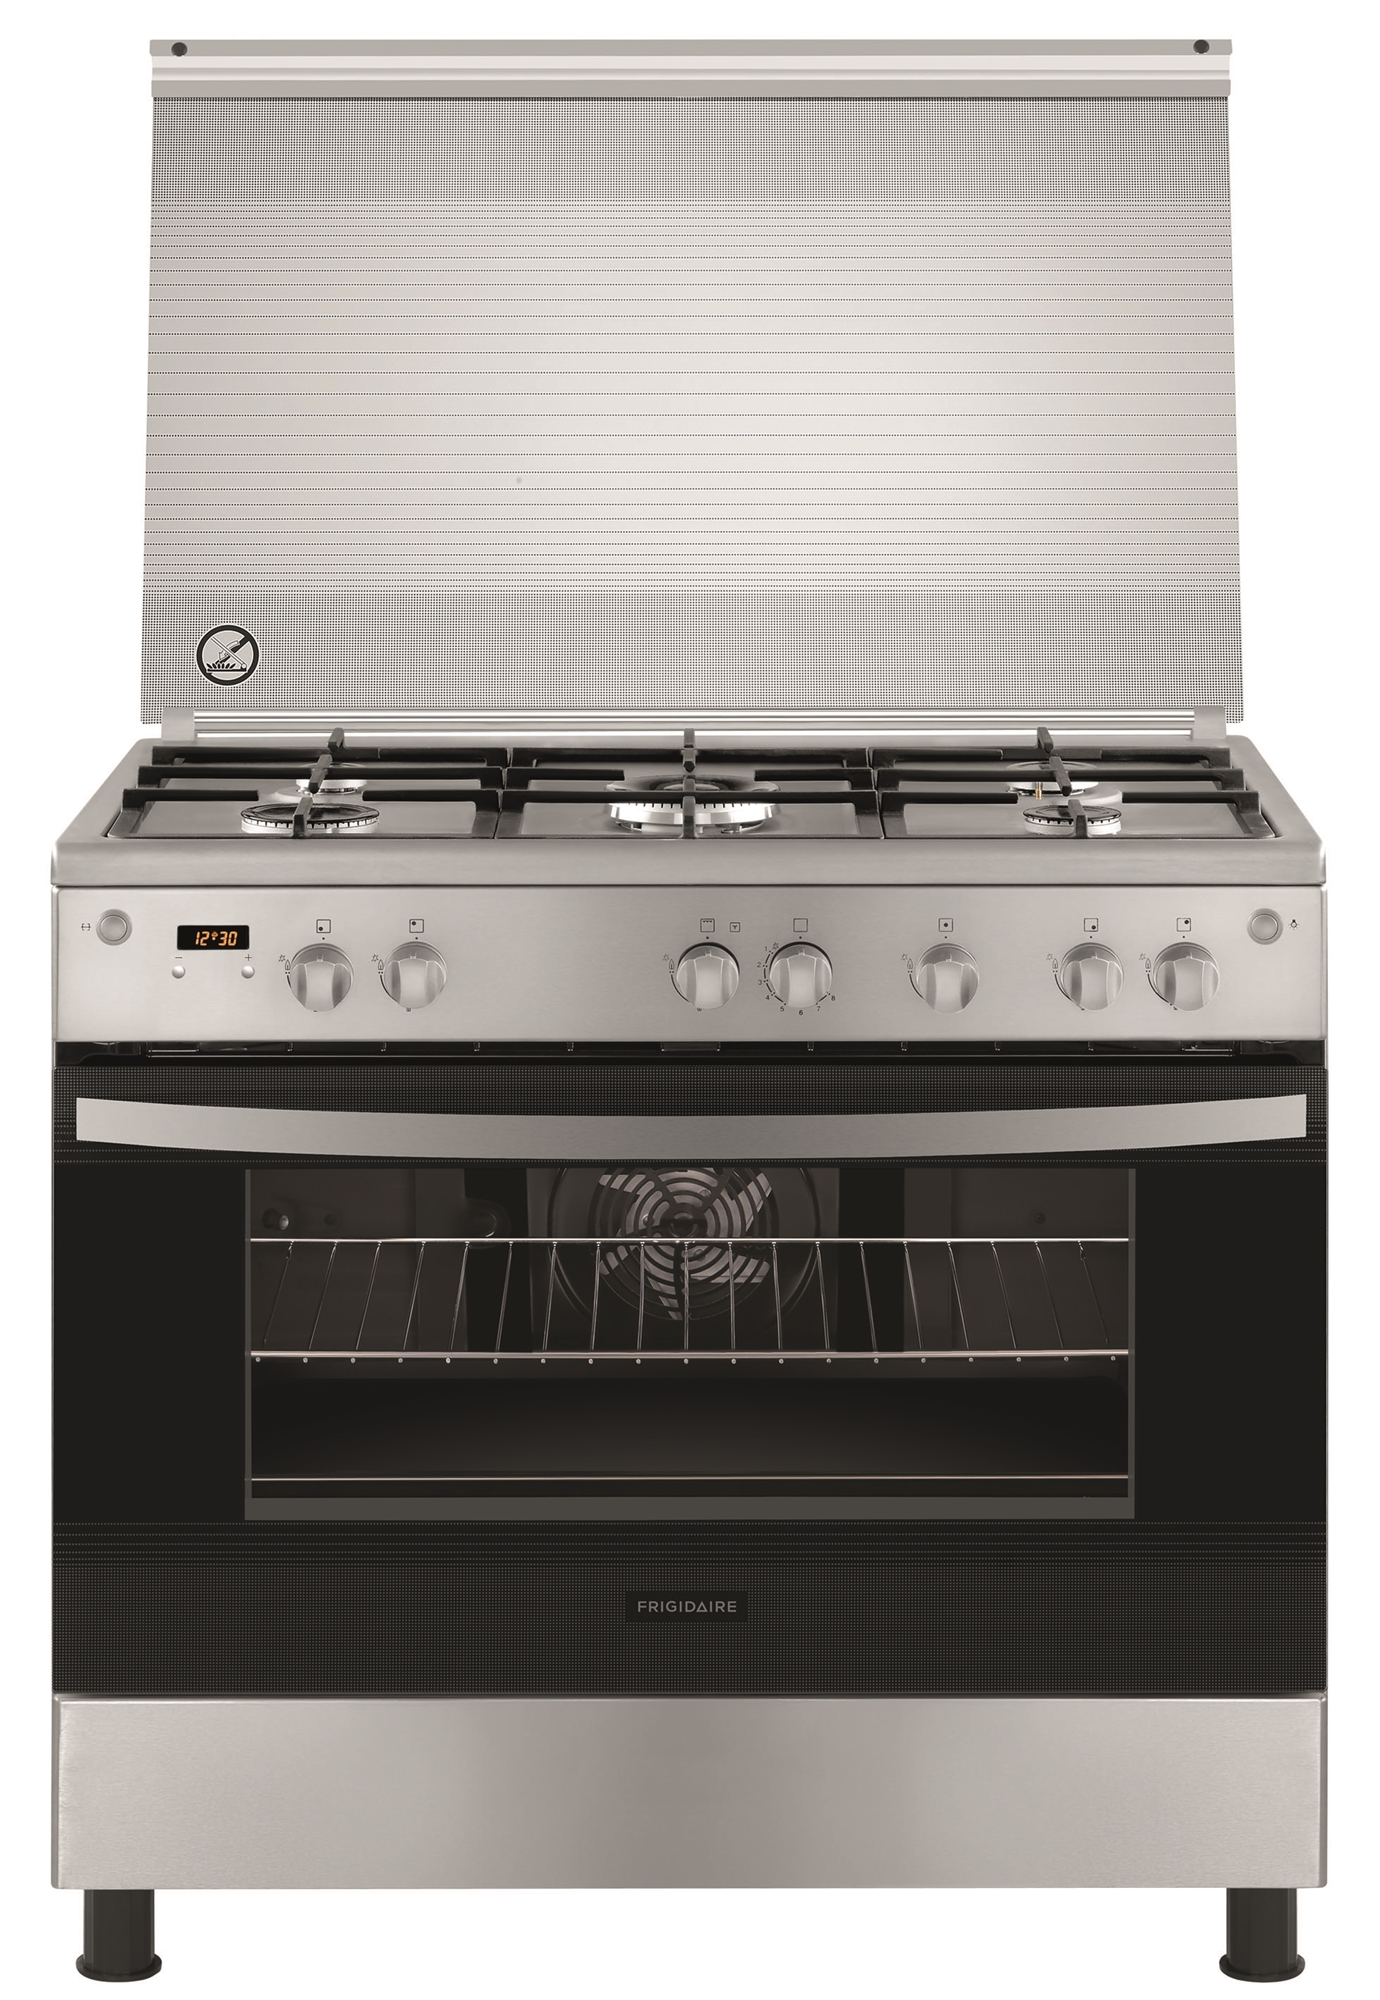 electrolux 90cm oven. Oven Net Capacity (liters): 116.1, Cooktop Width (cm): 90cm Electrolux W